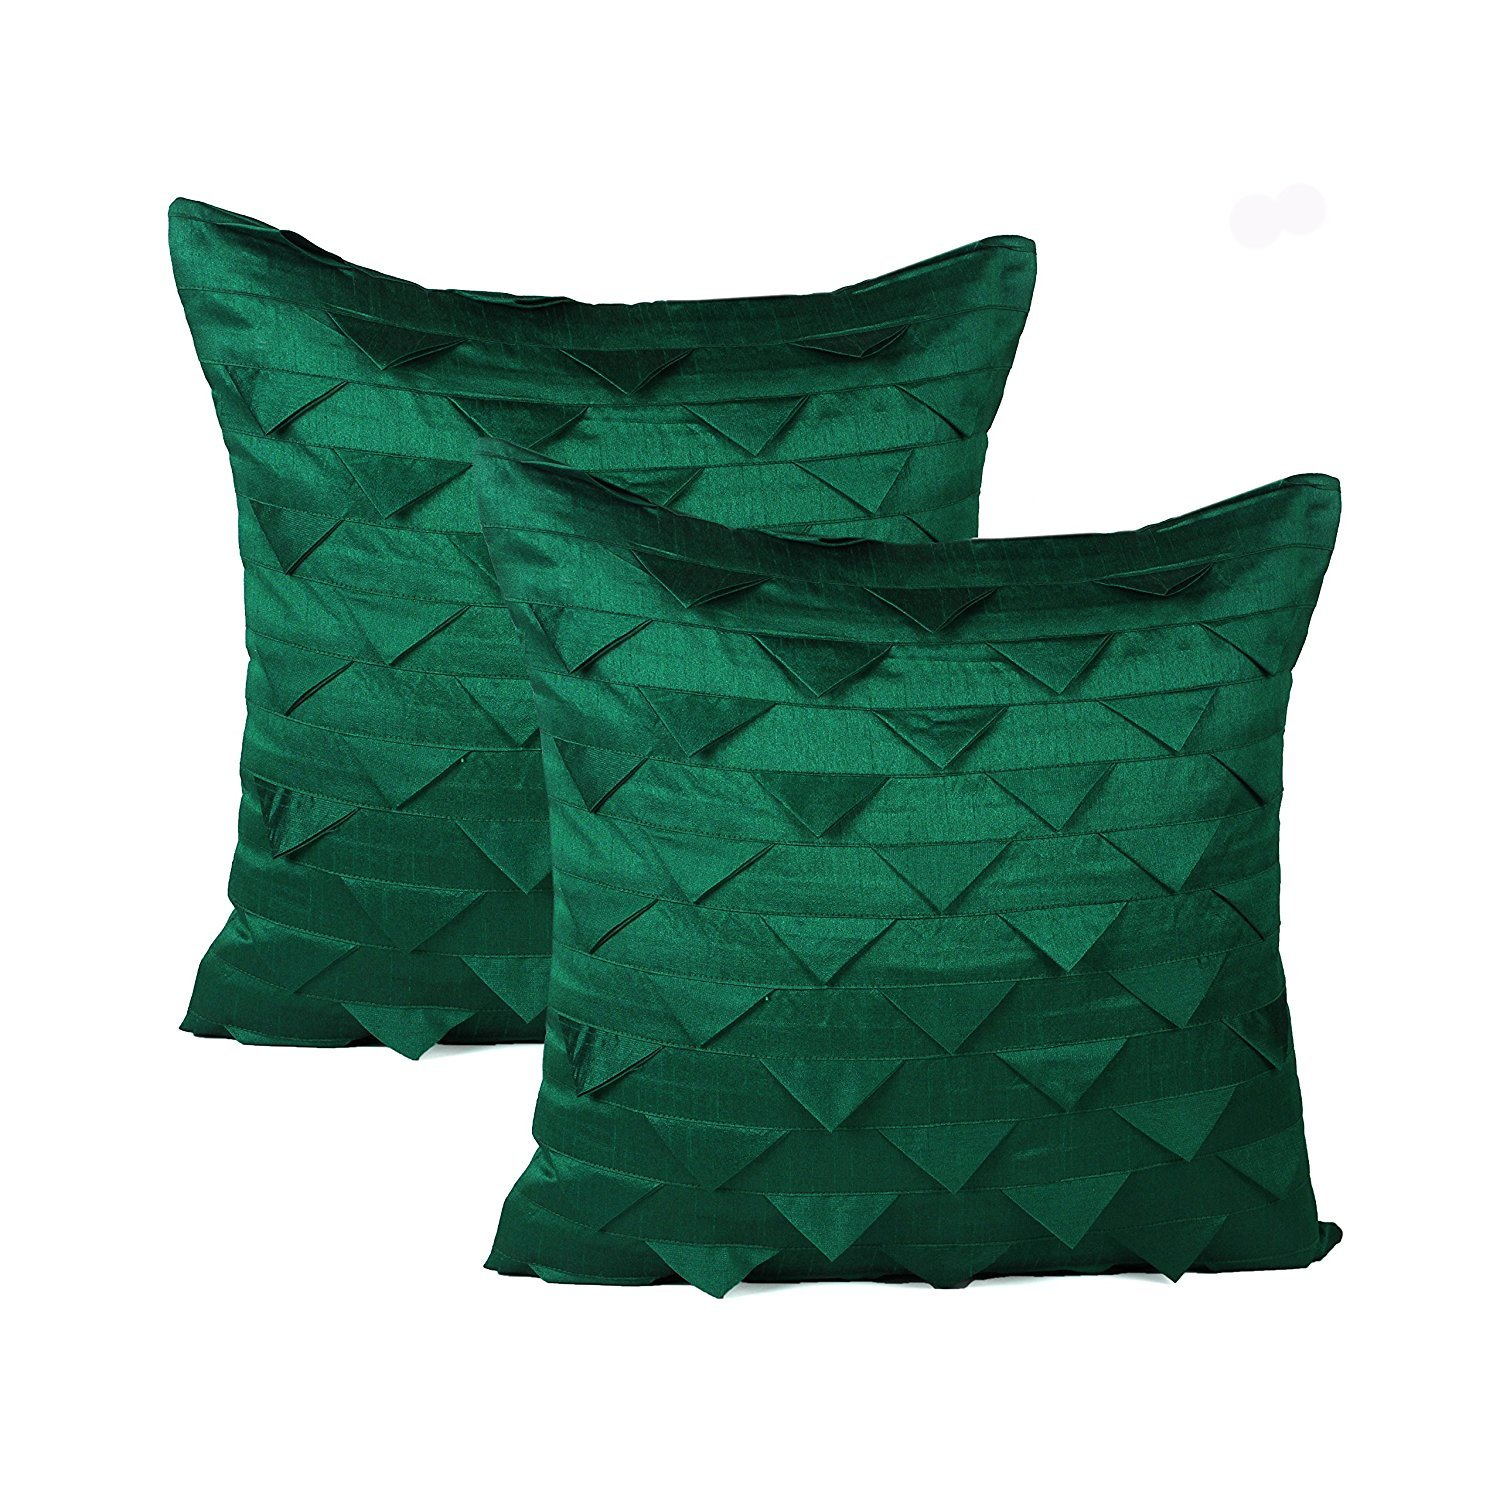 The White Petals Set of 2 Emerald Green Accent Pillow Covers, Origami Style, Textured (Solid Emerald Green, 20x20 inches)